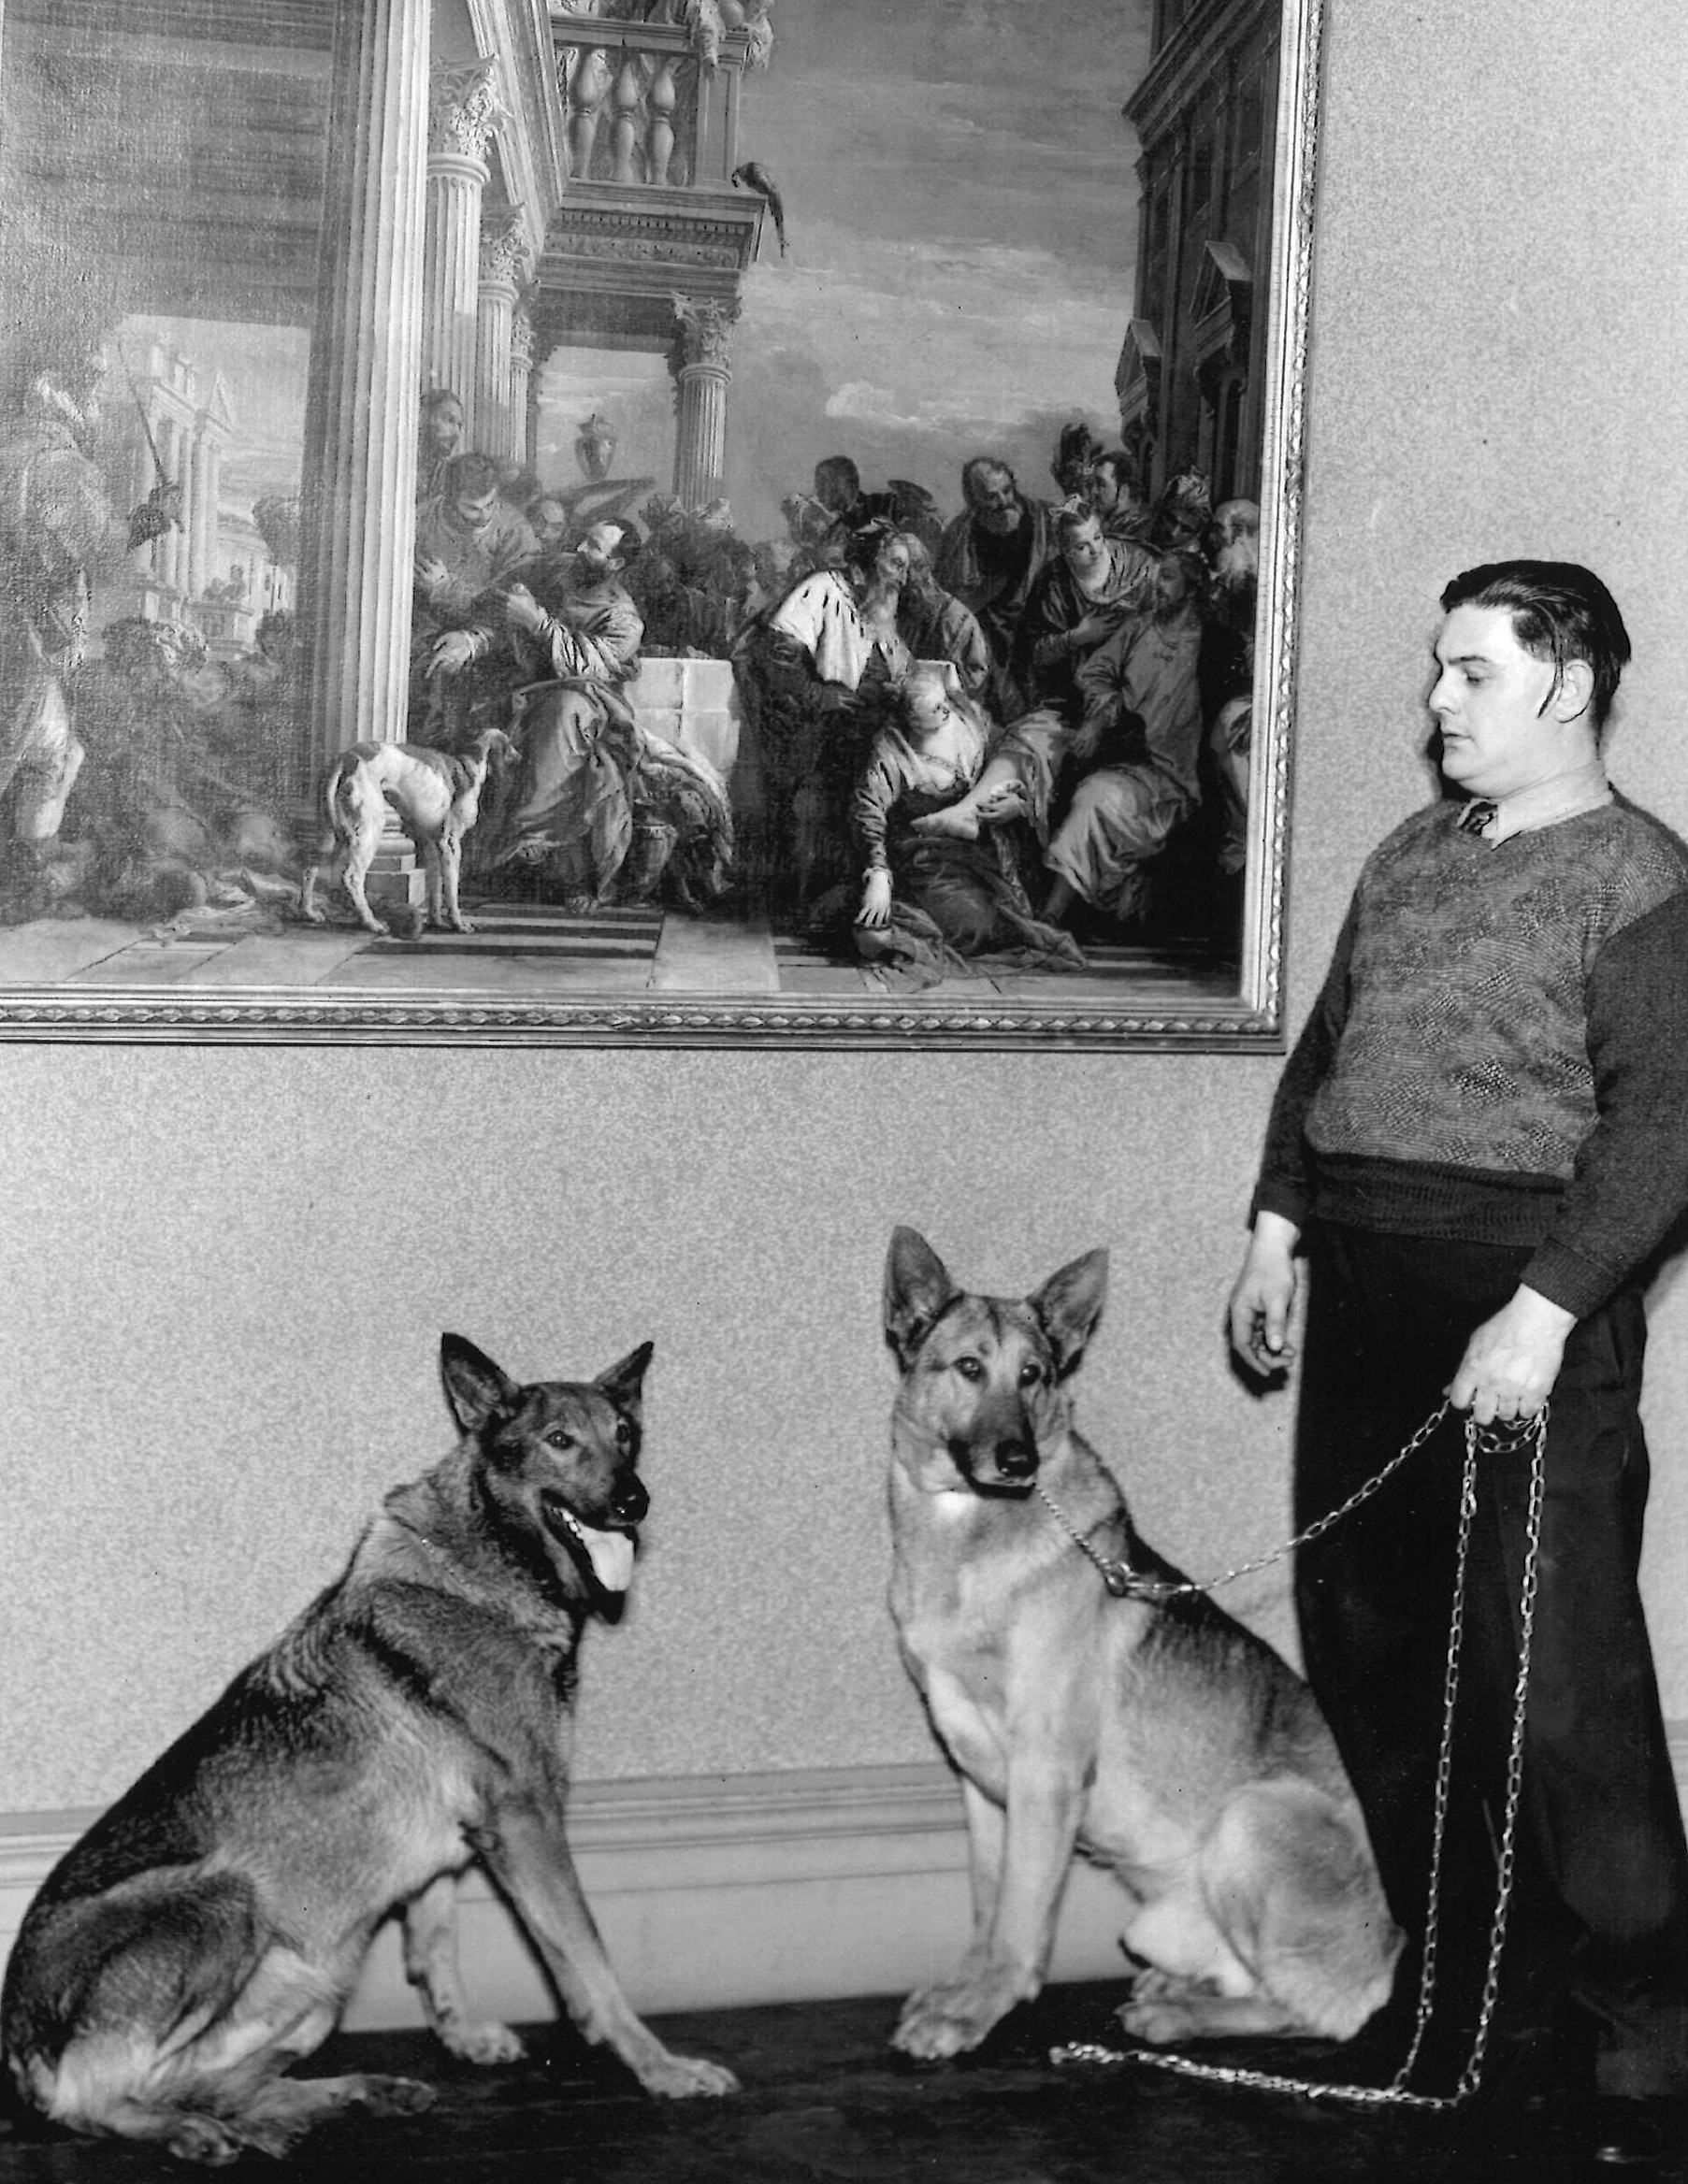 William Seiler. keeper. and the Art Institute of Chicago guard dogs, 1938